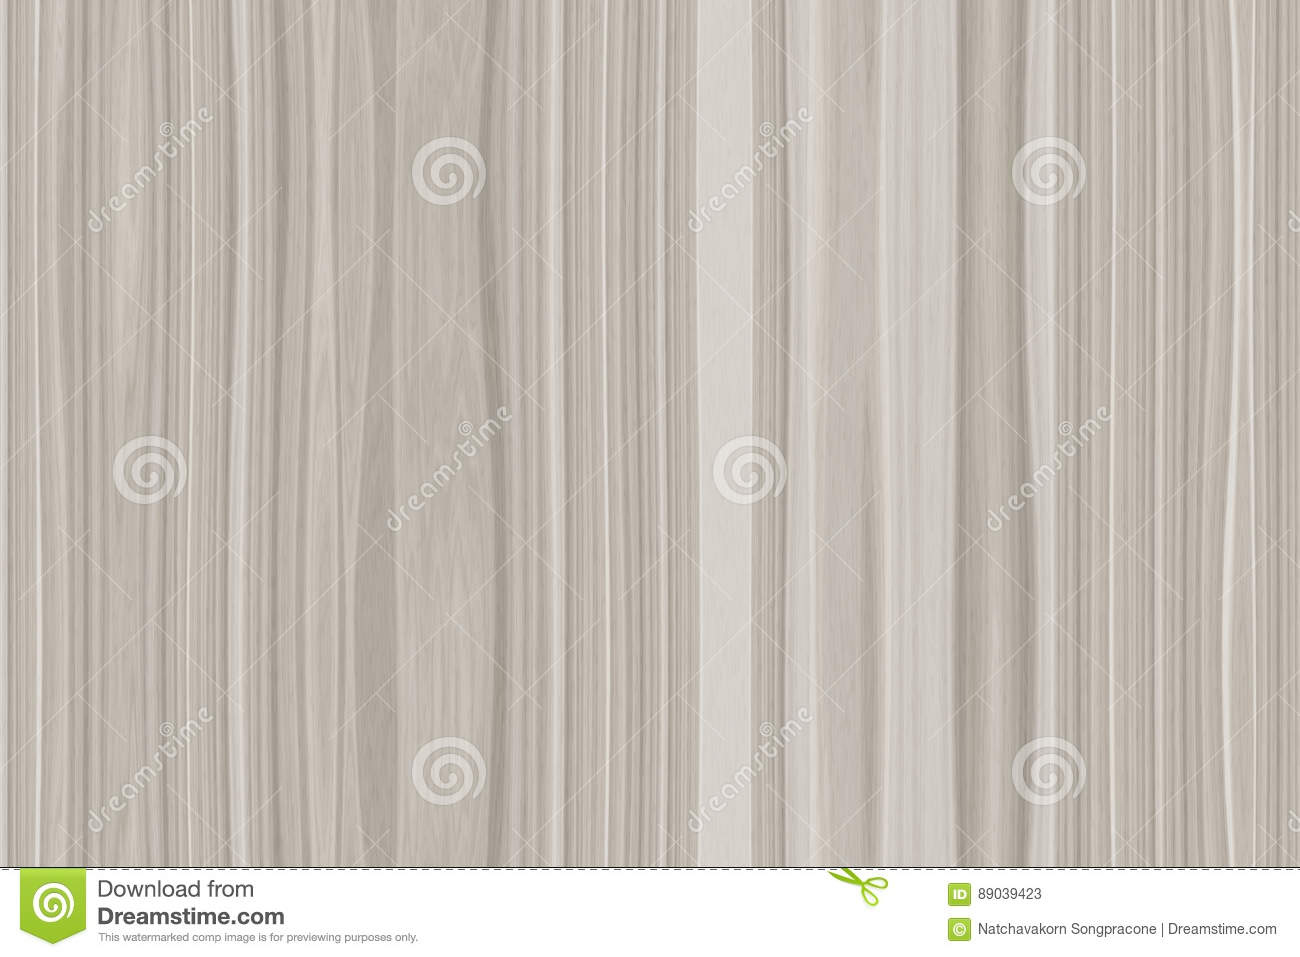 Download Seamless Ash Wood Pallet Texture Illustration Stock